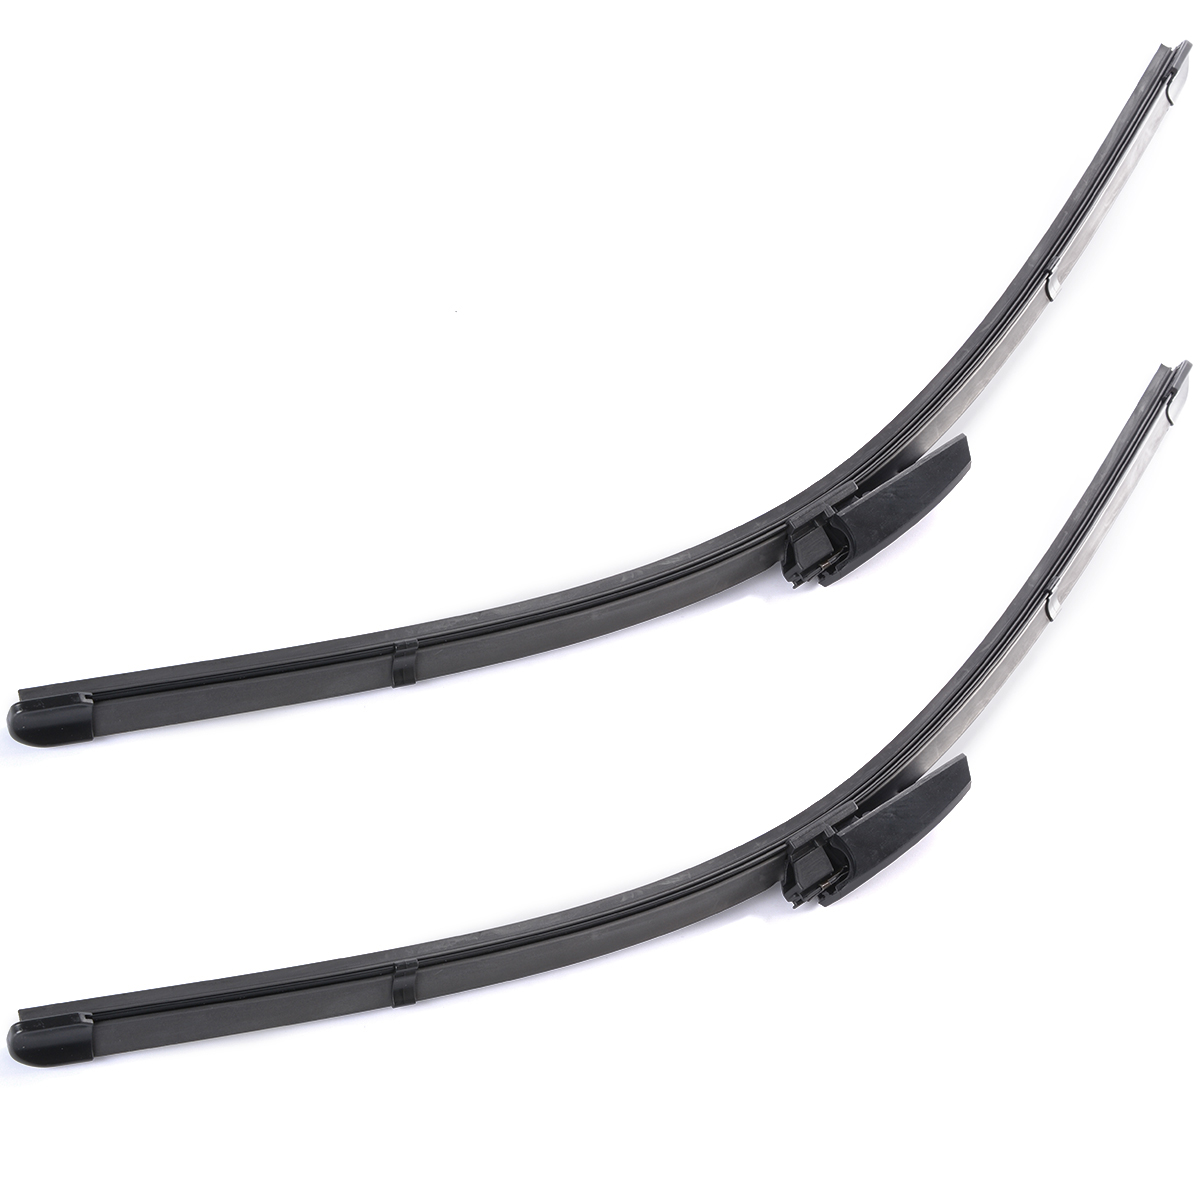 "2Pcs 22"" Car Accessories Windshield Wiper Blade Bracketless Soft Rubber Arm Blade for Audi A4 B6/B7 S4 RS4 A6 MA176(China (Mainland))"